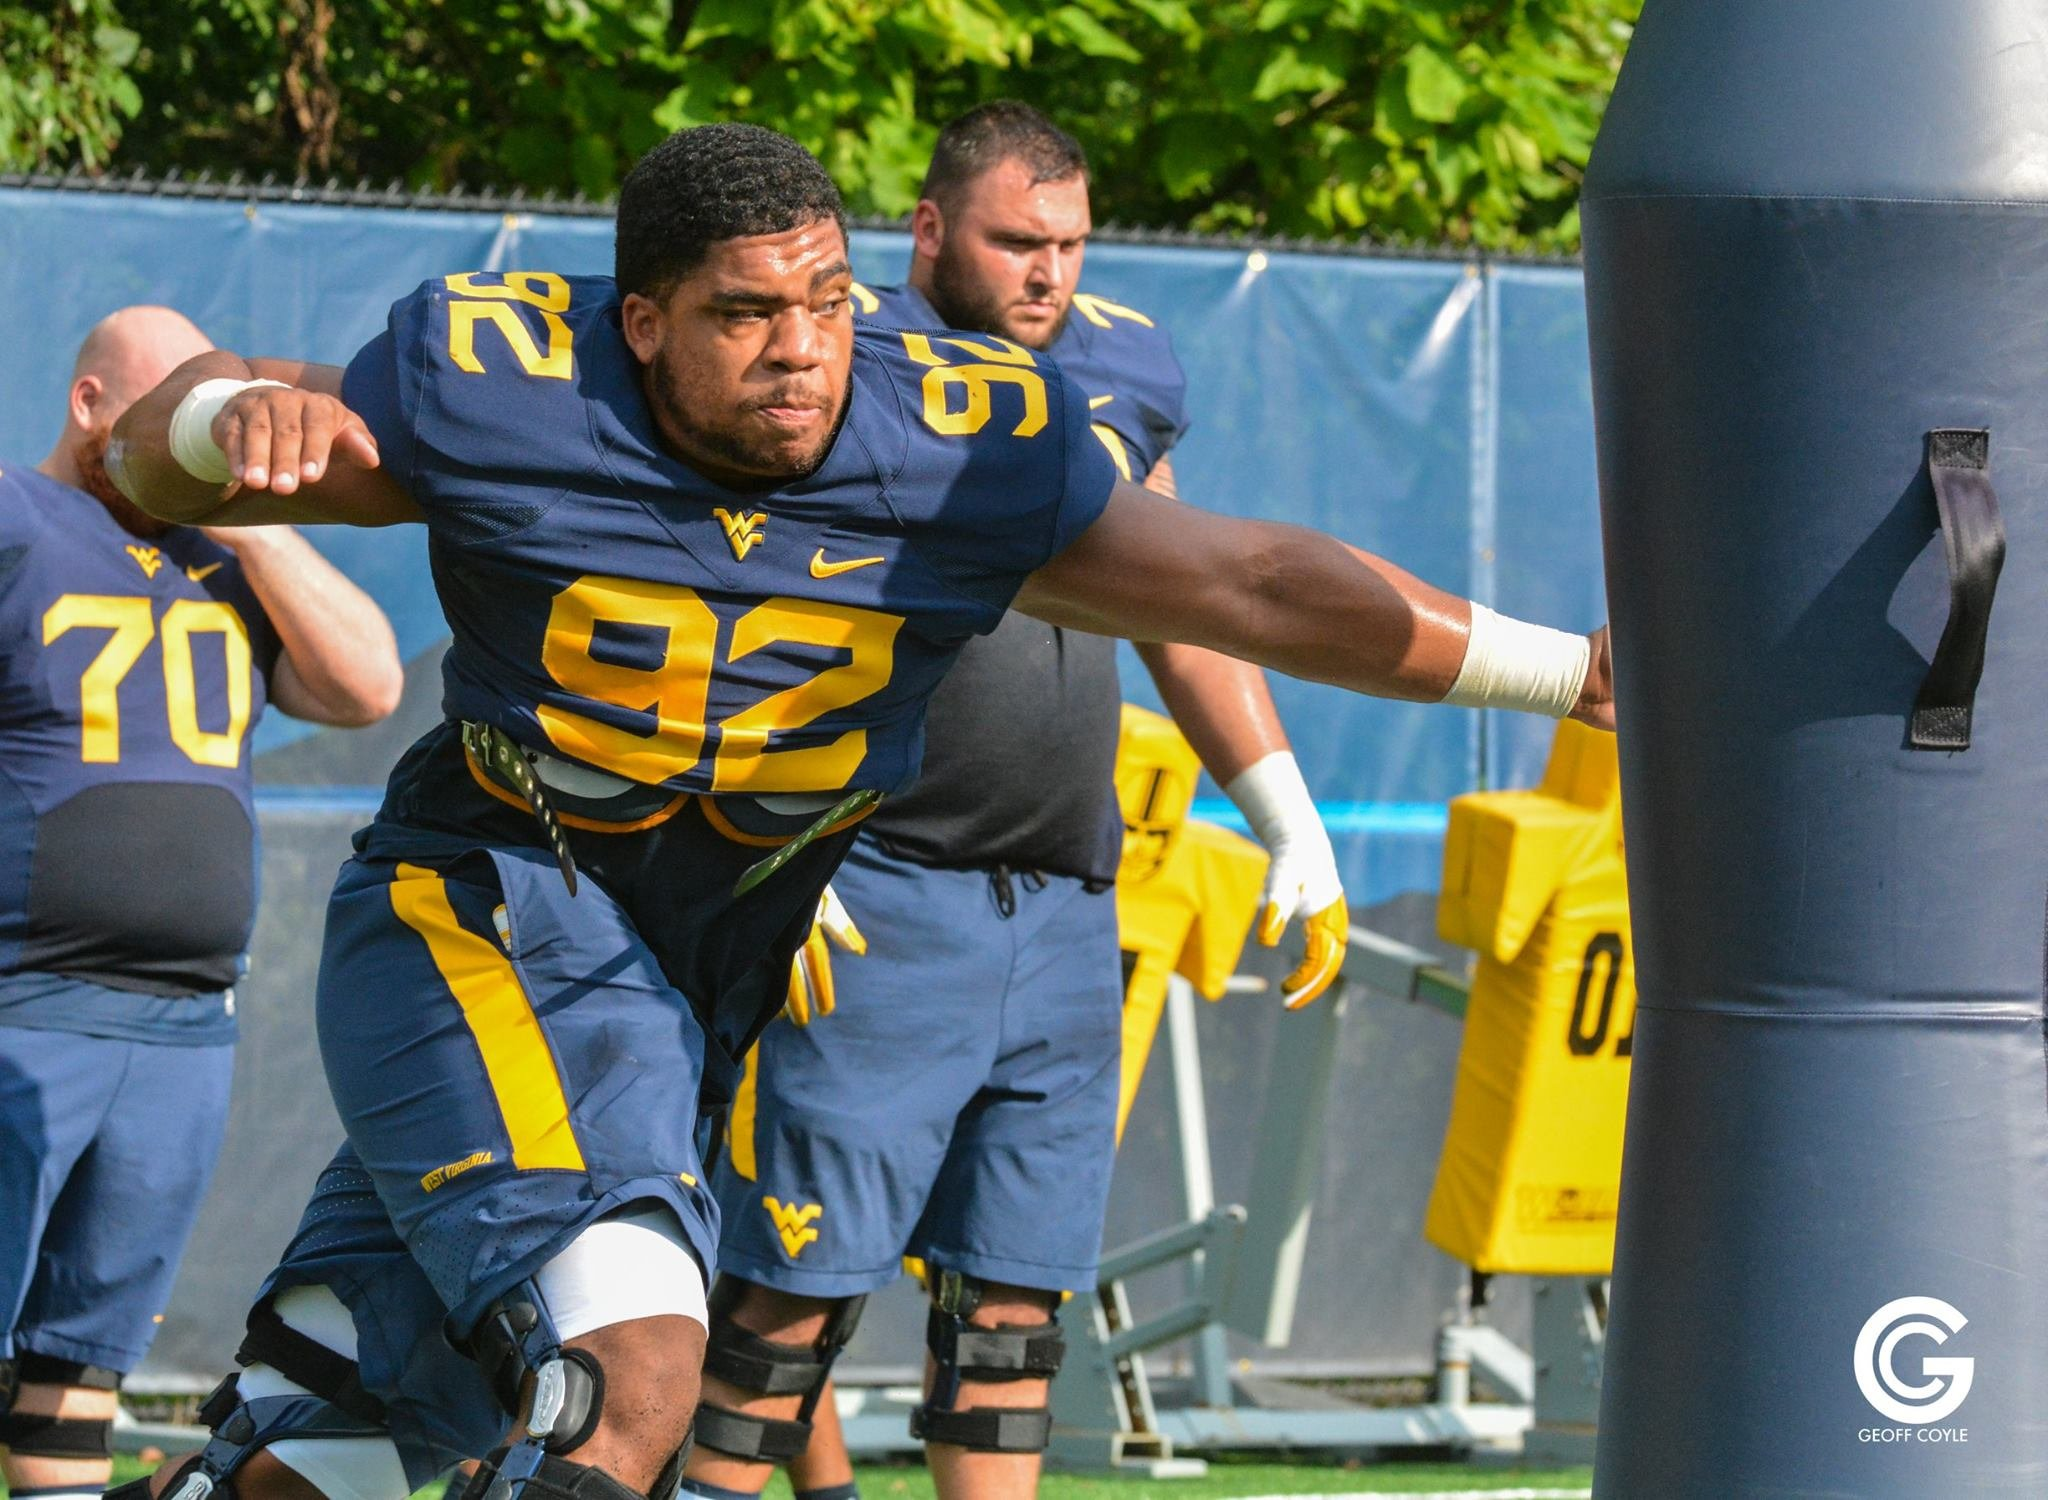 University High School graduate Jon Lewis works a defensive line drill in Morgantown. (PHOTO: Geoff Coyle)